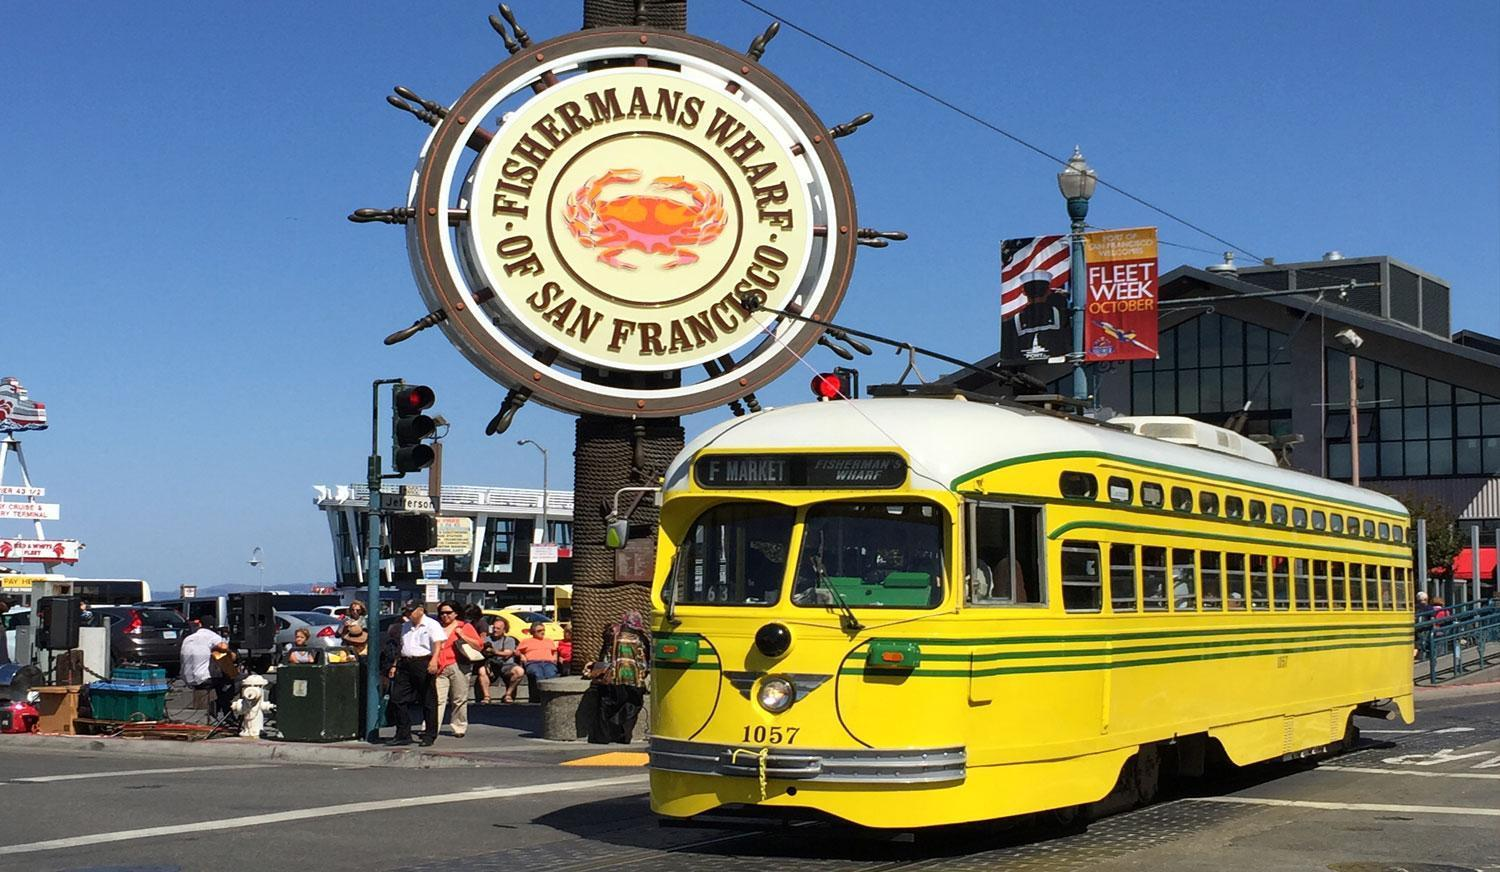 fishermans wharf sf dungeness